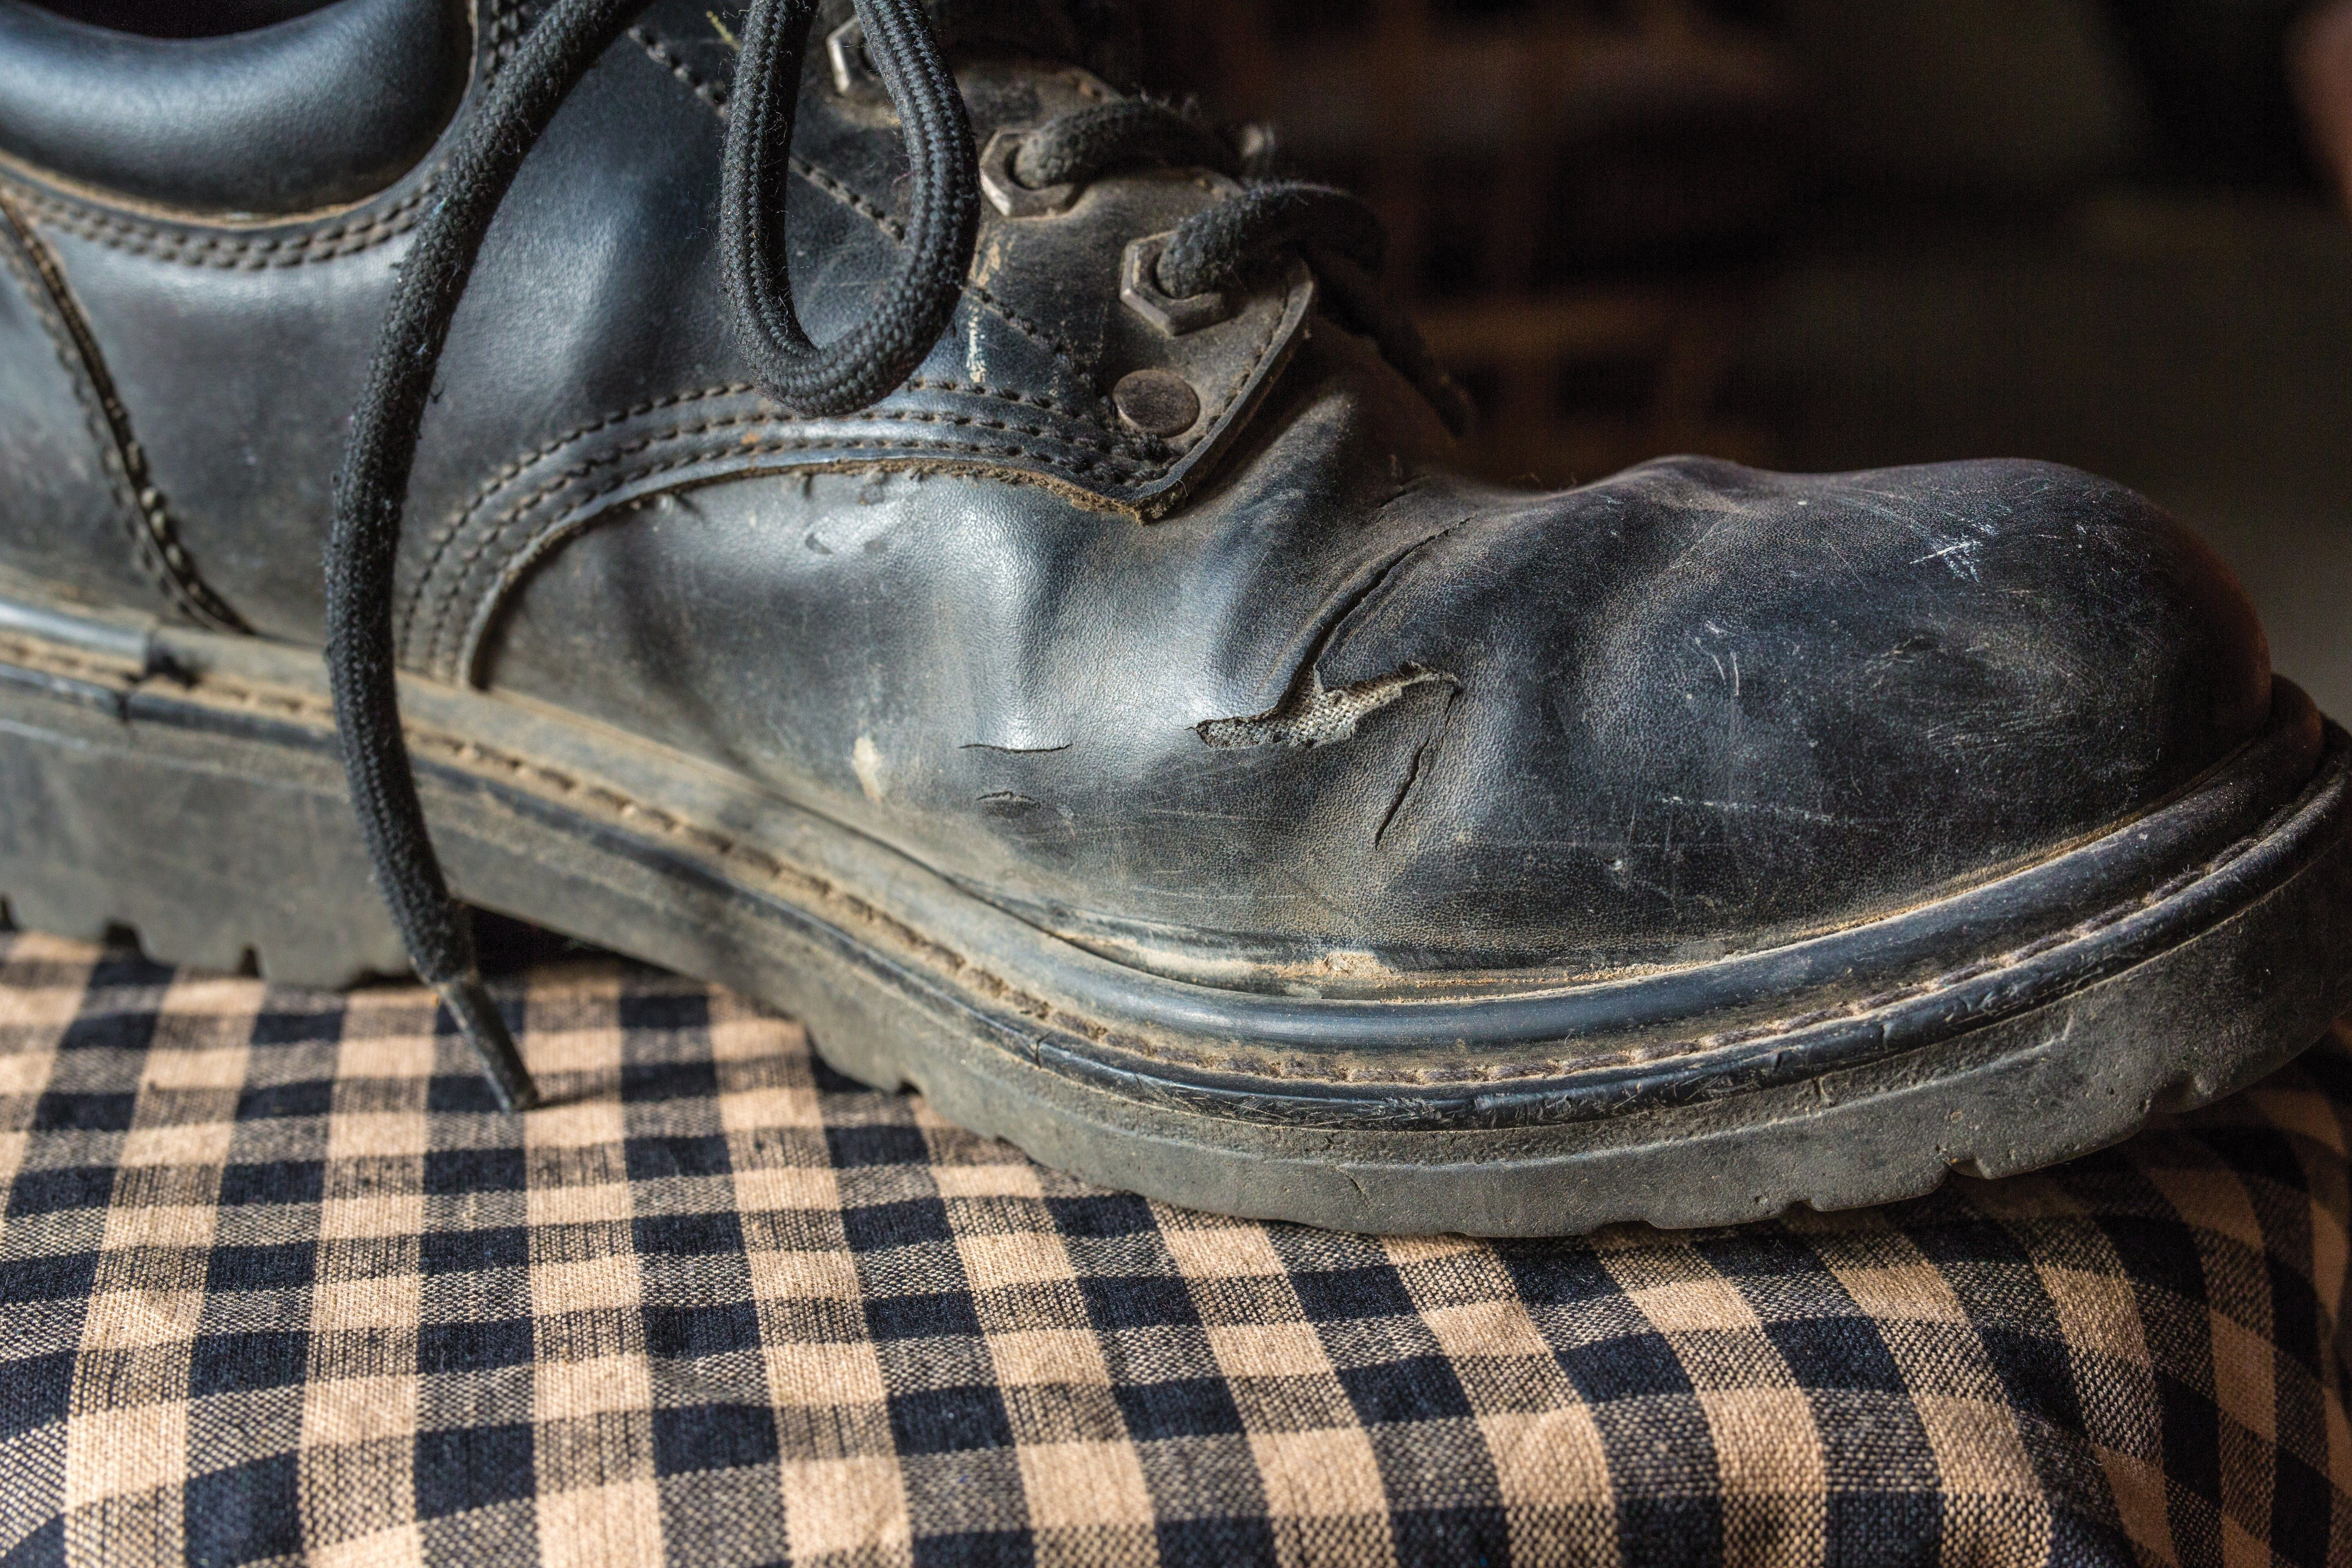 An old black shoe that has begun to wear out.